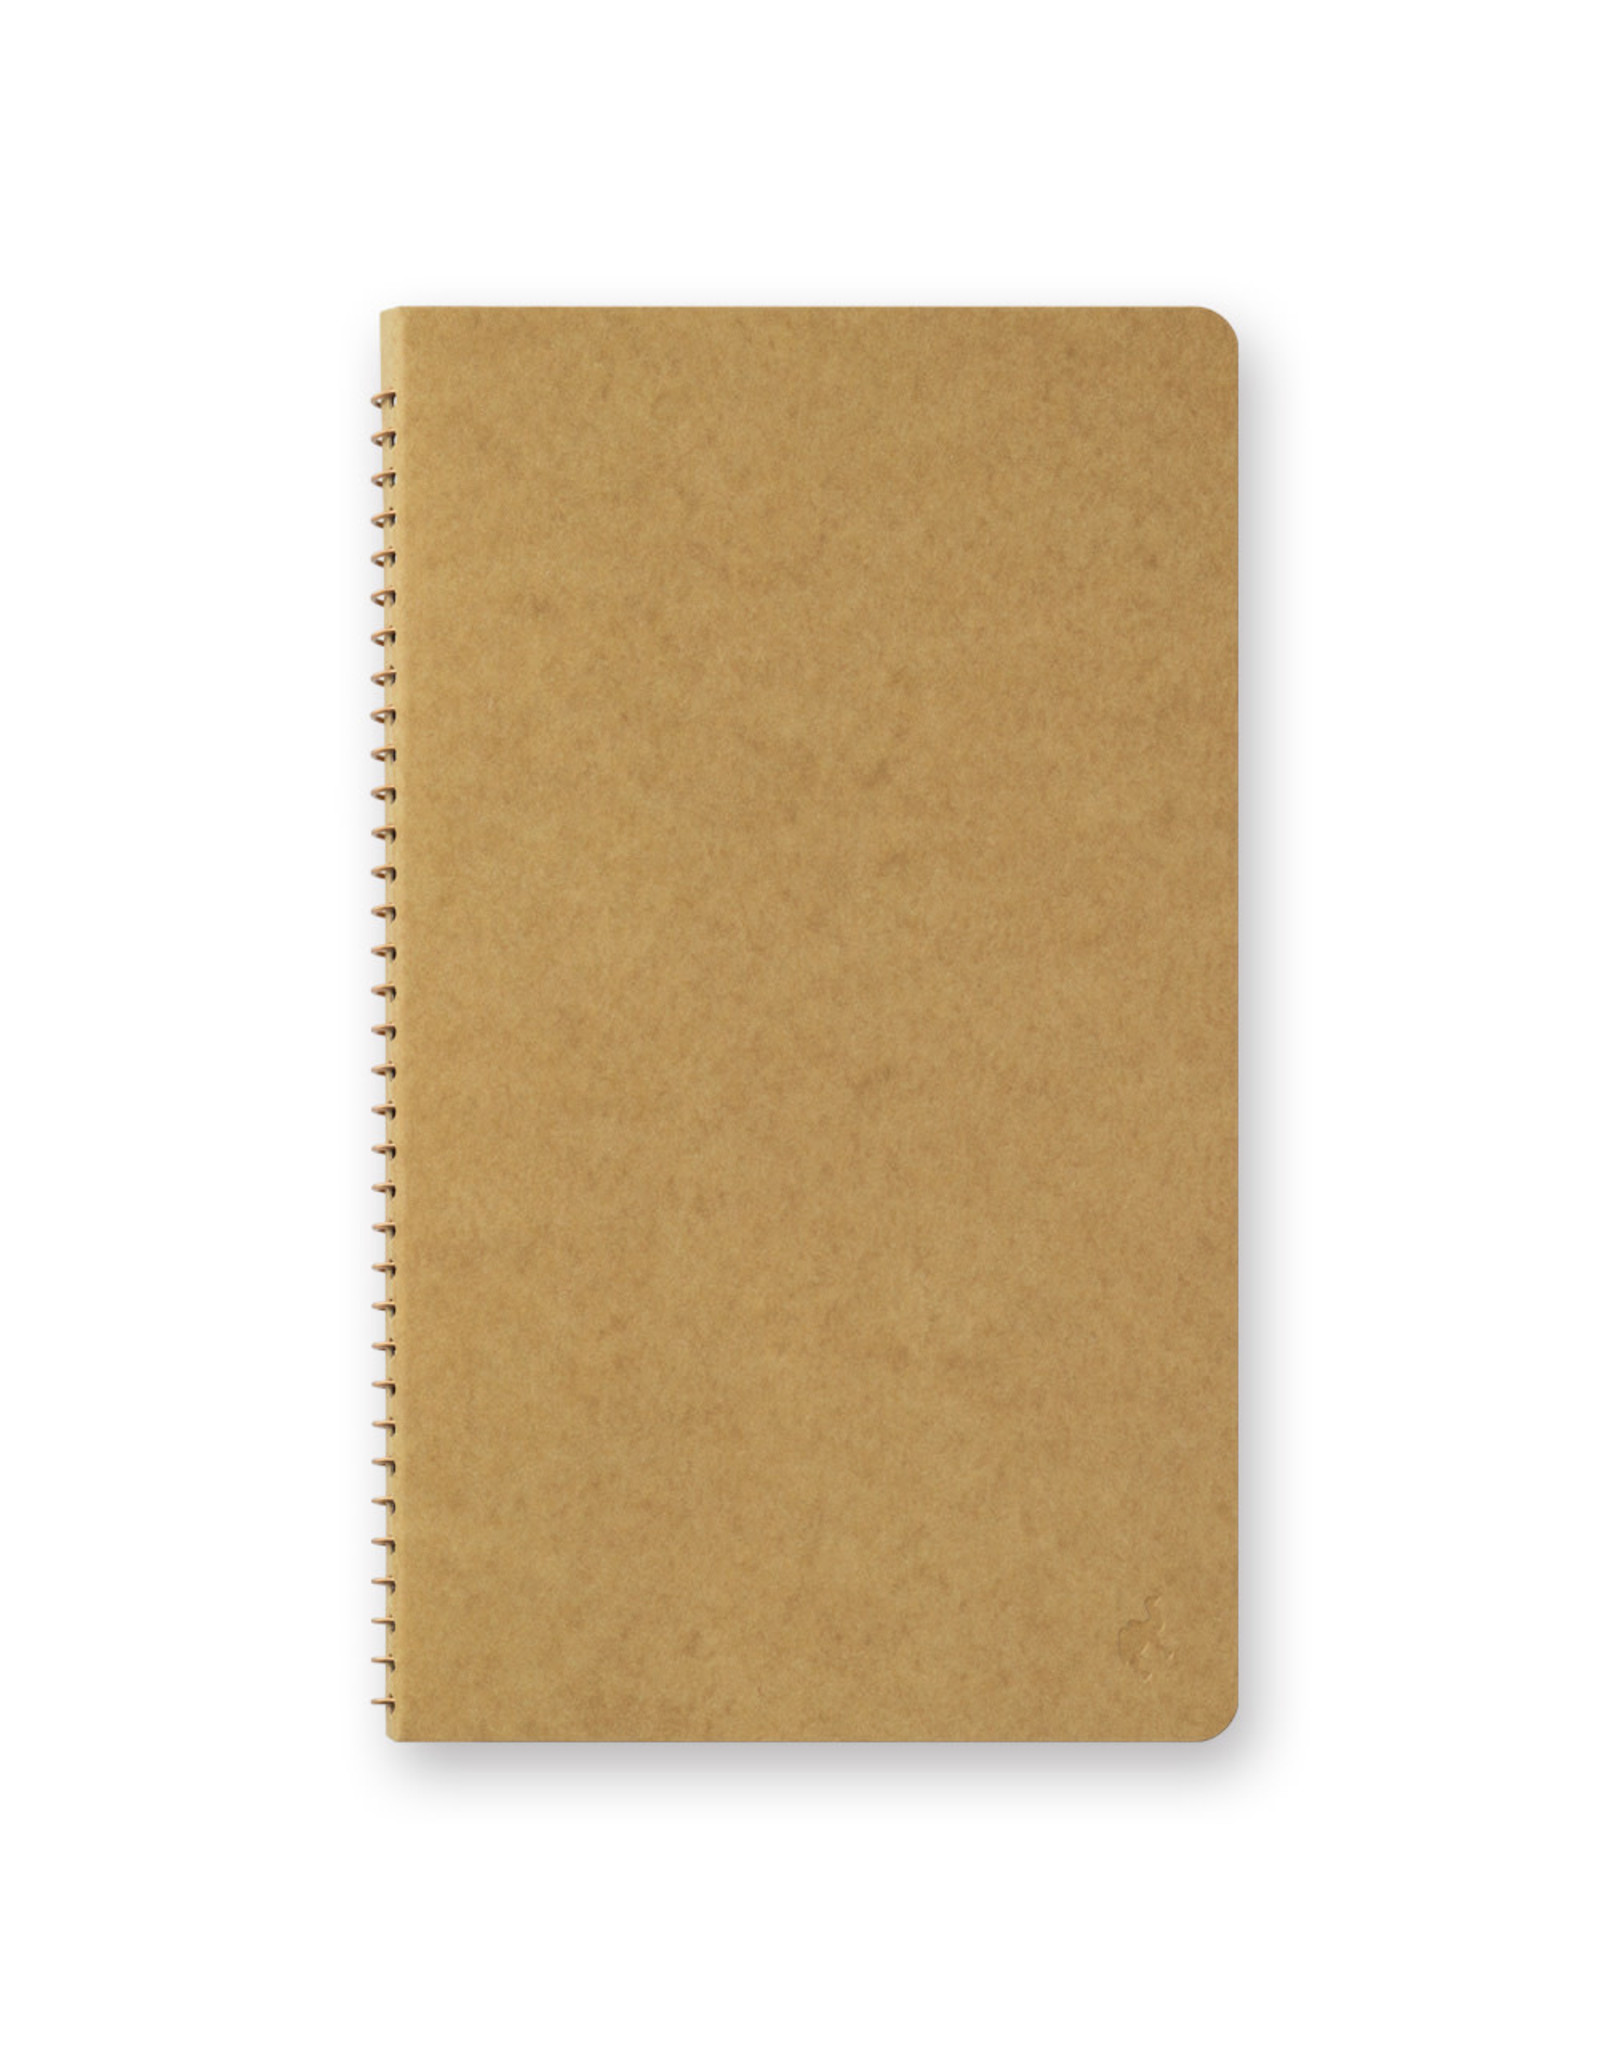 Traveler's Company SPIRAL RING NOTEBOOK A5 SLIM BLANK DW KRAFT 80 SHEETS (160 PAGES)